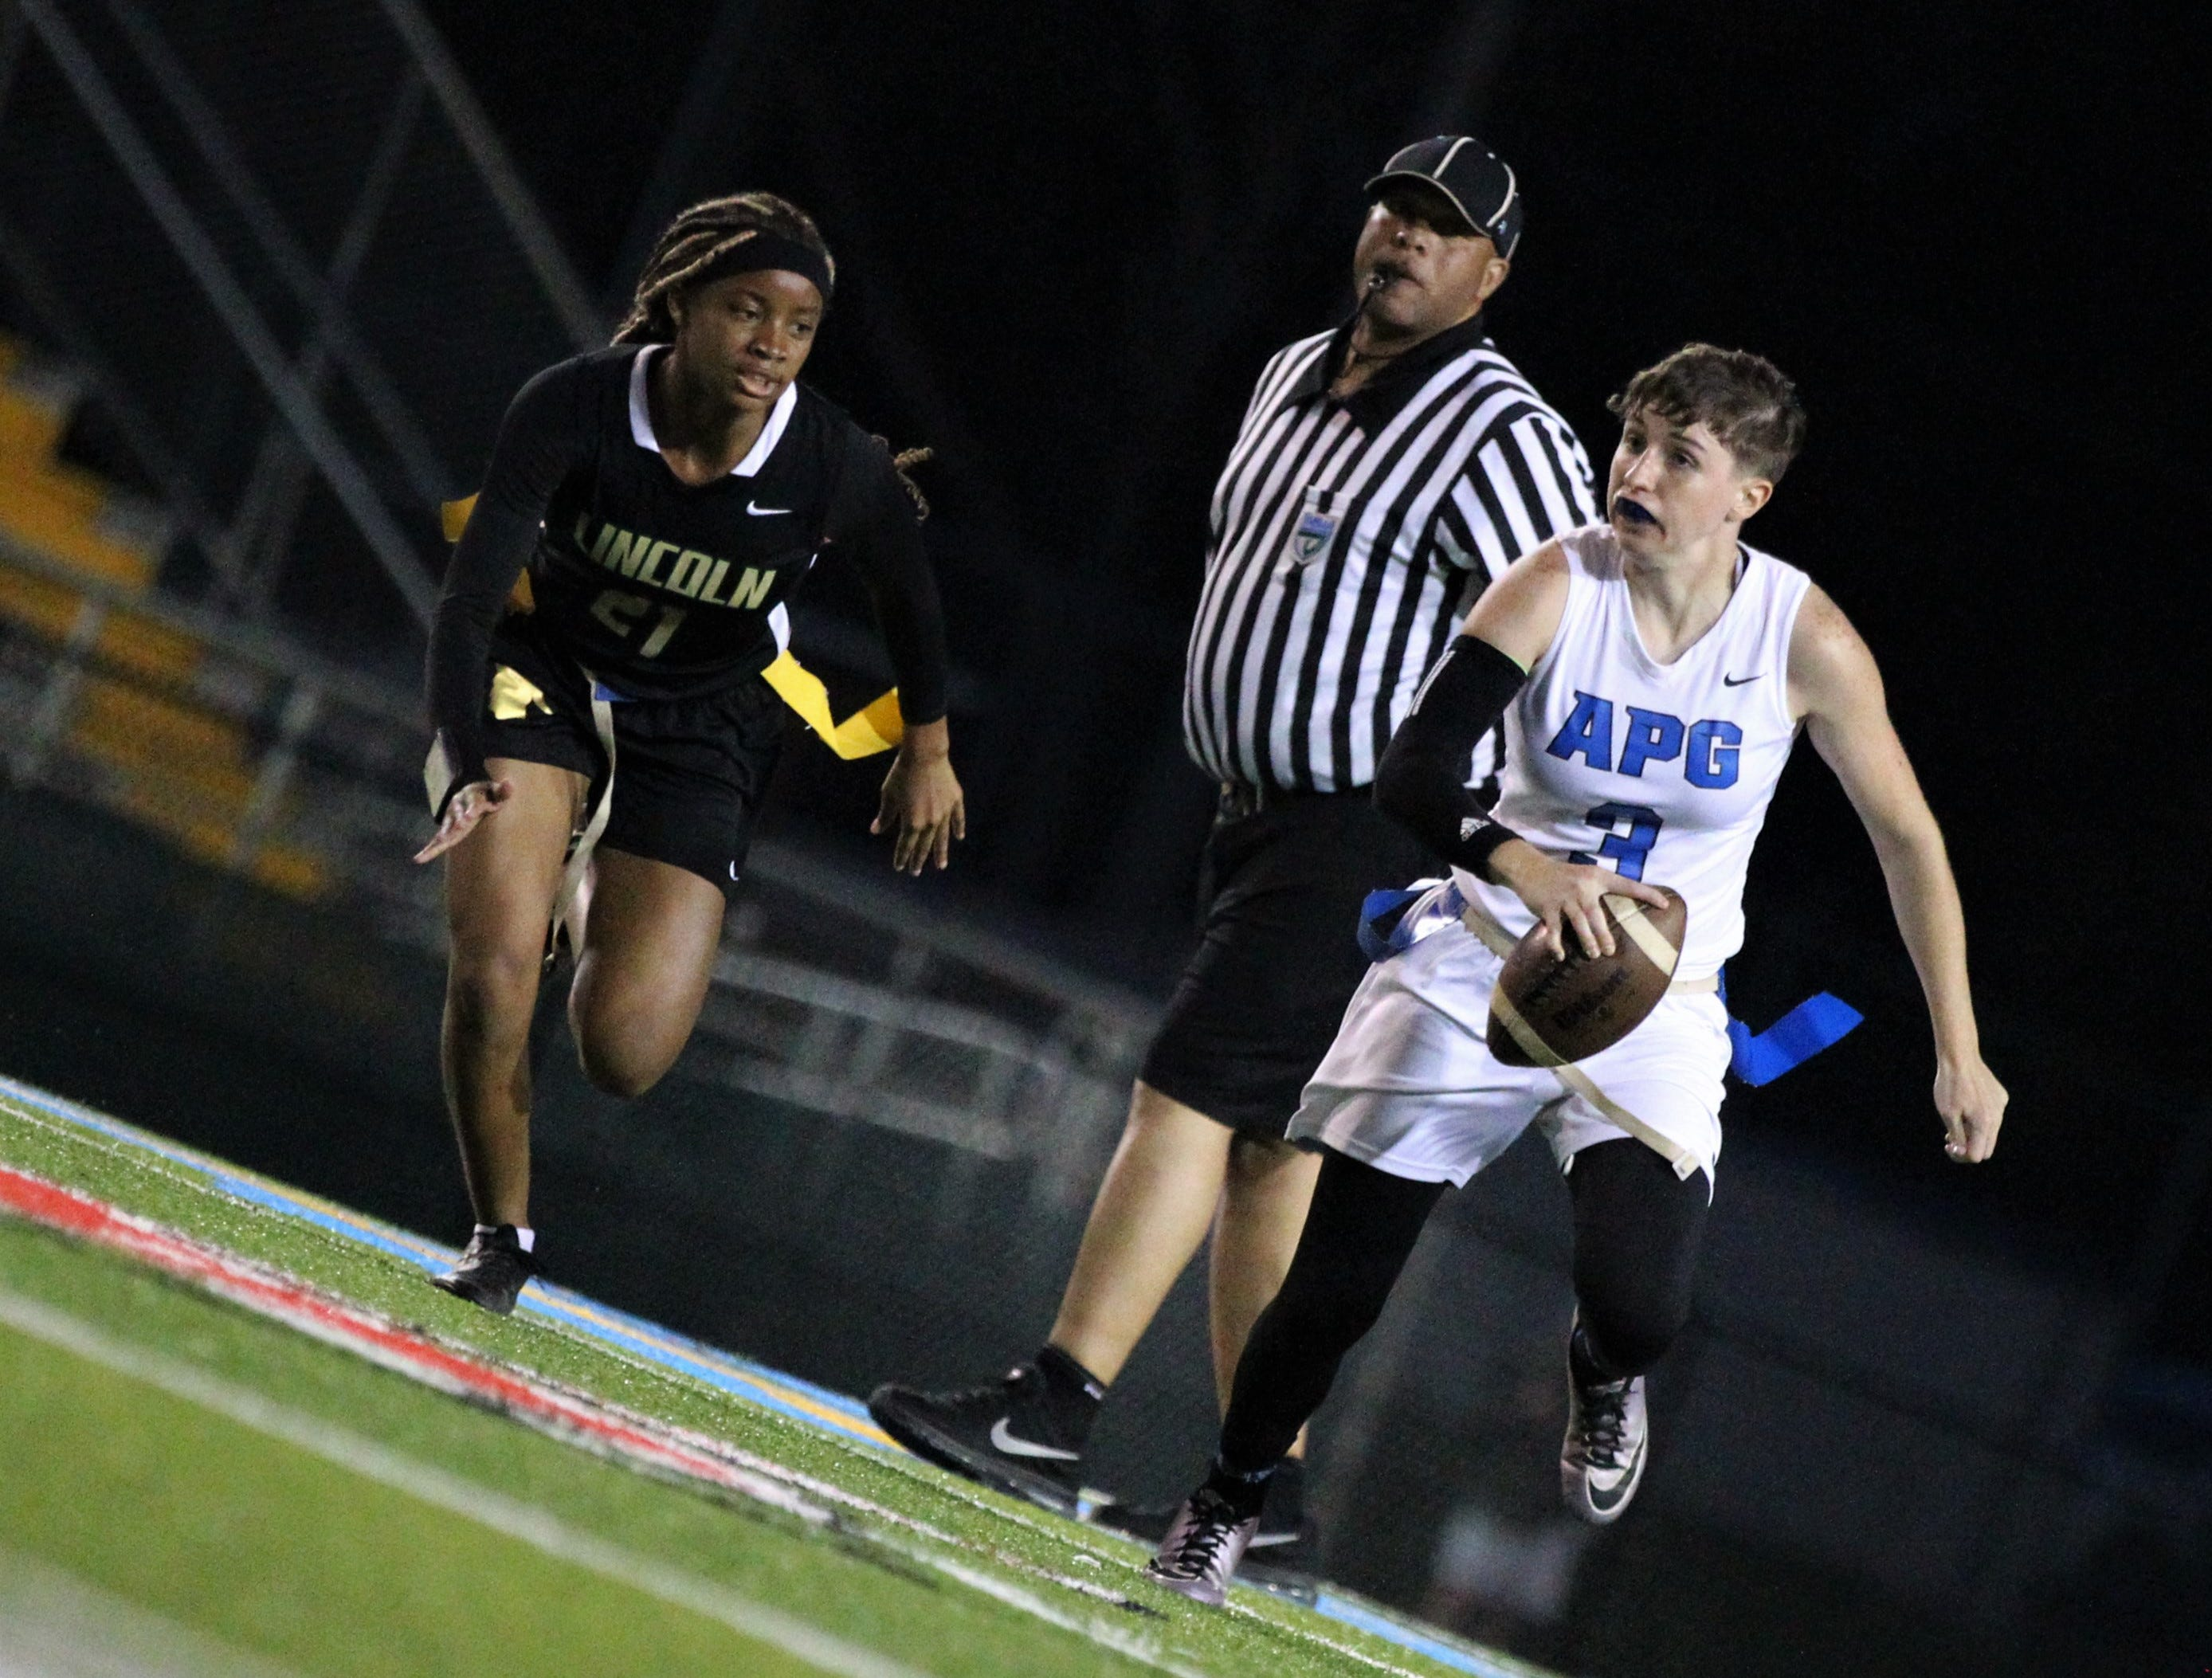 Godby senior quarterback Kaylene Colburn evades a pass rush as Godby's flag football team beat Lincoln 25-6 at Gene Cox Stadium on March 14, 2019.